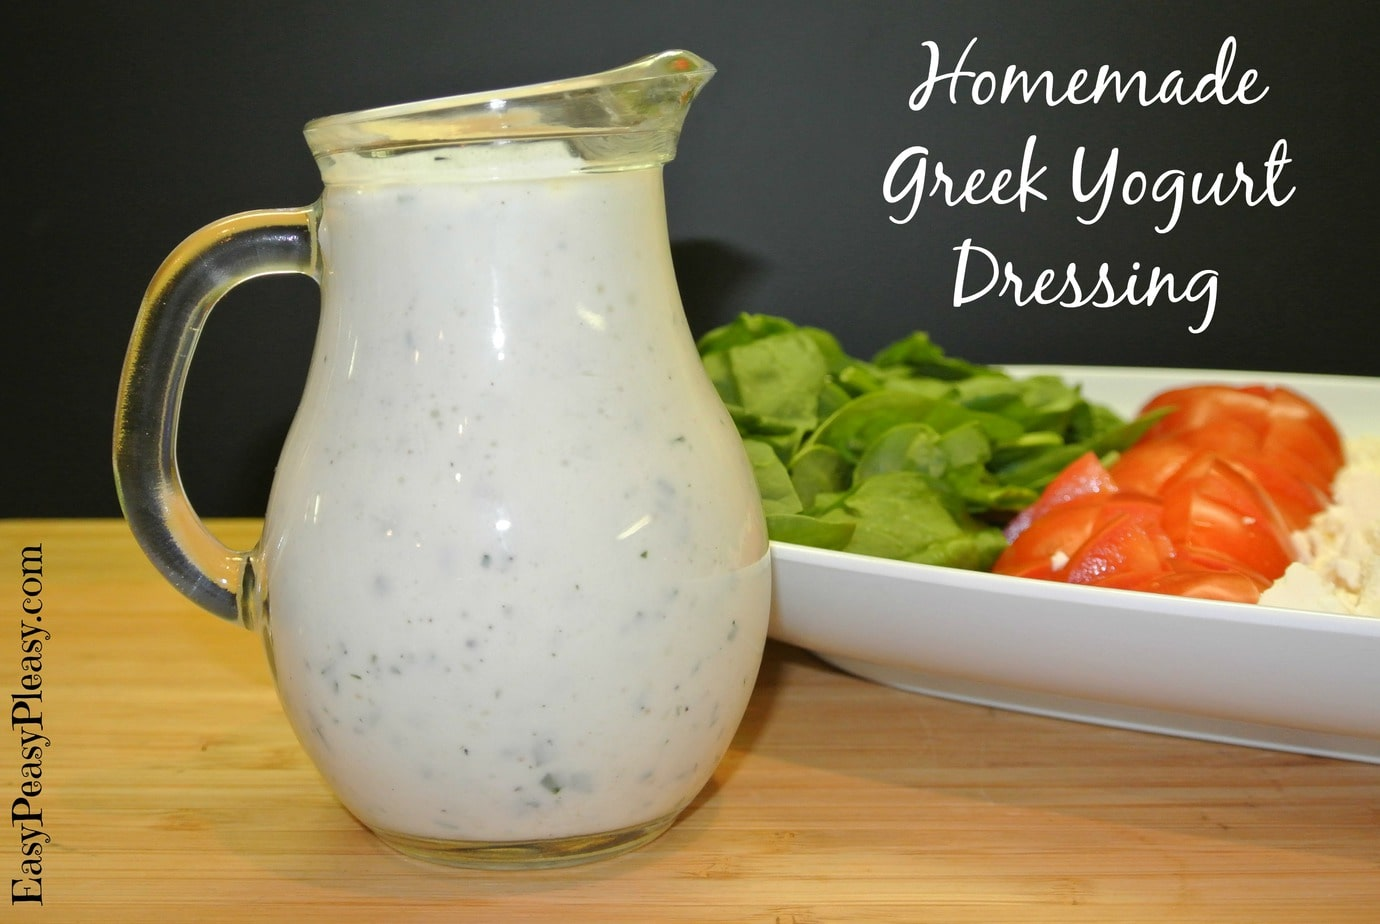 Homemade Greek Yogurt Dressing